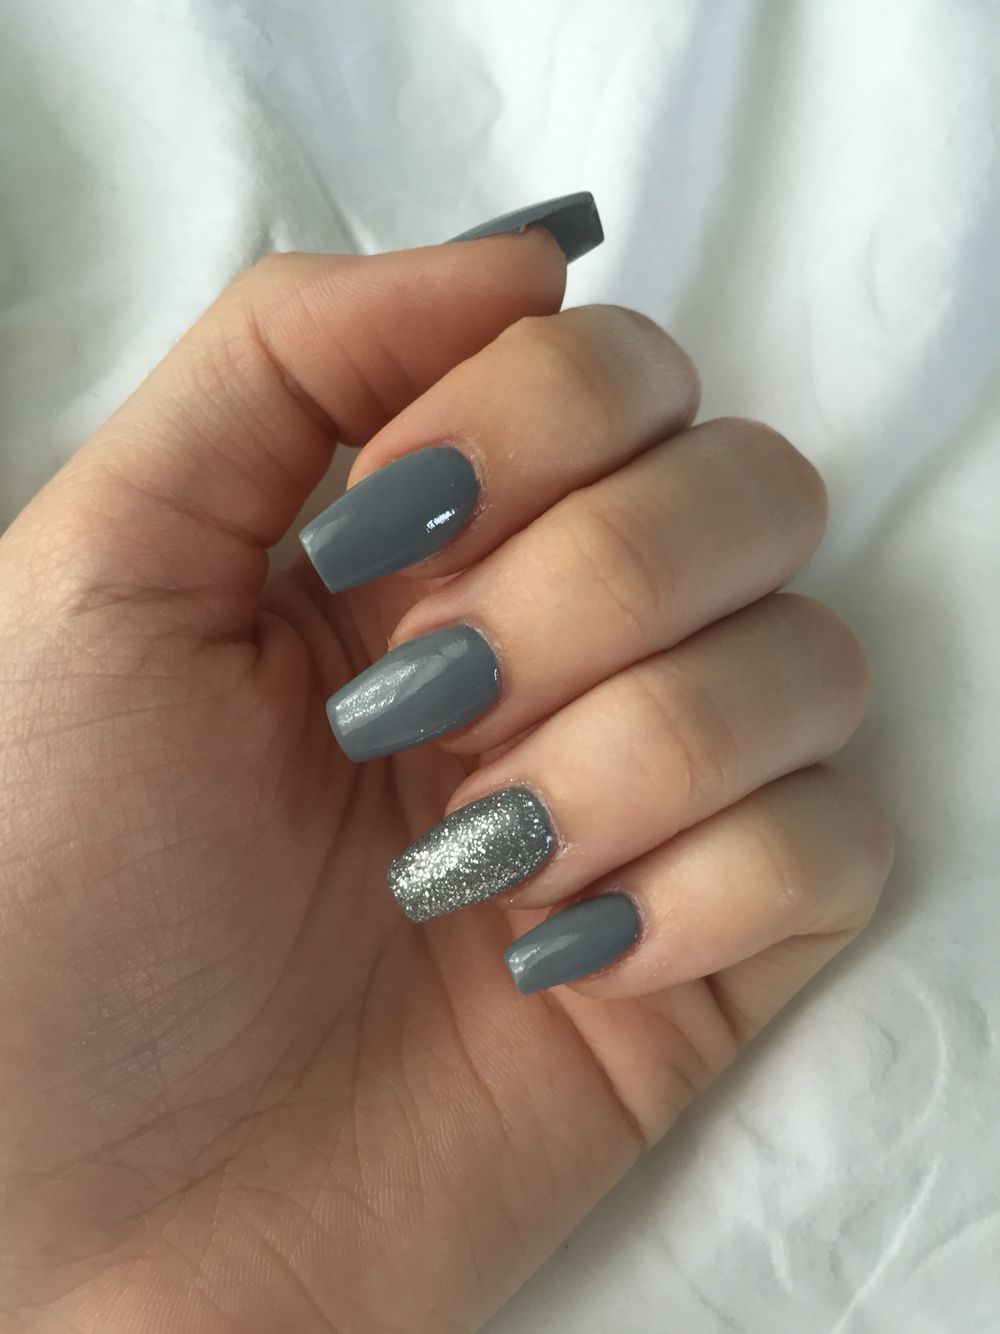 Gray Coffin Shaped Acrylic Nails With Silver Glitter Acrylic Nails Coffin Grey Grey Acrylic Nails Silver Glitter Nails